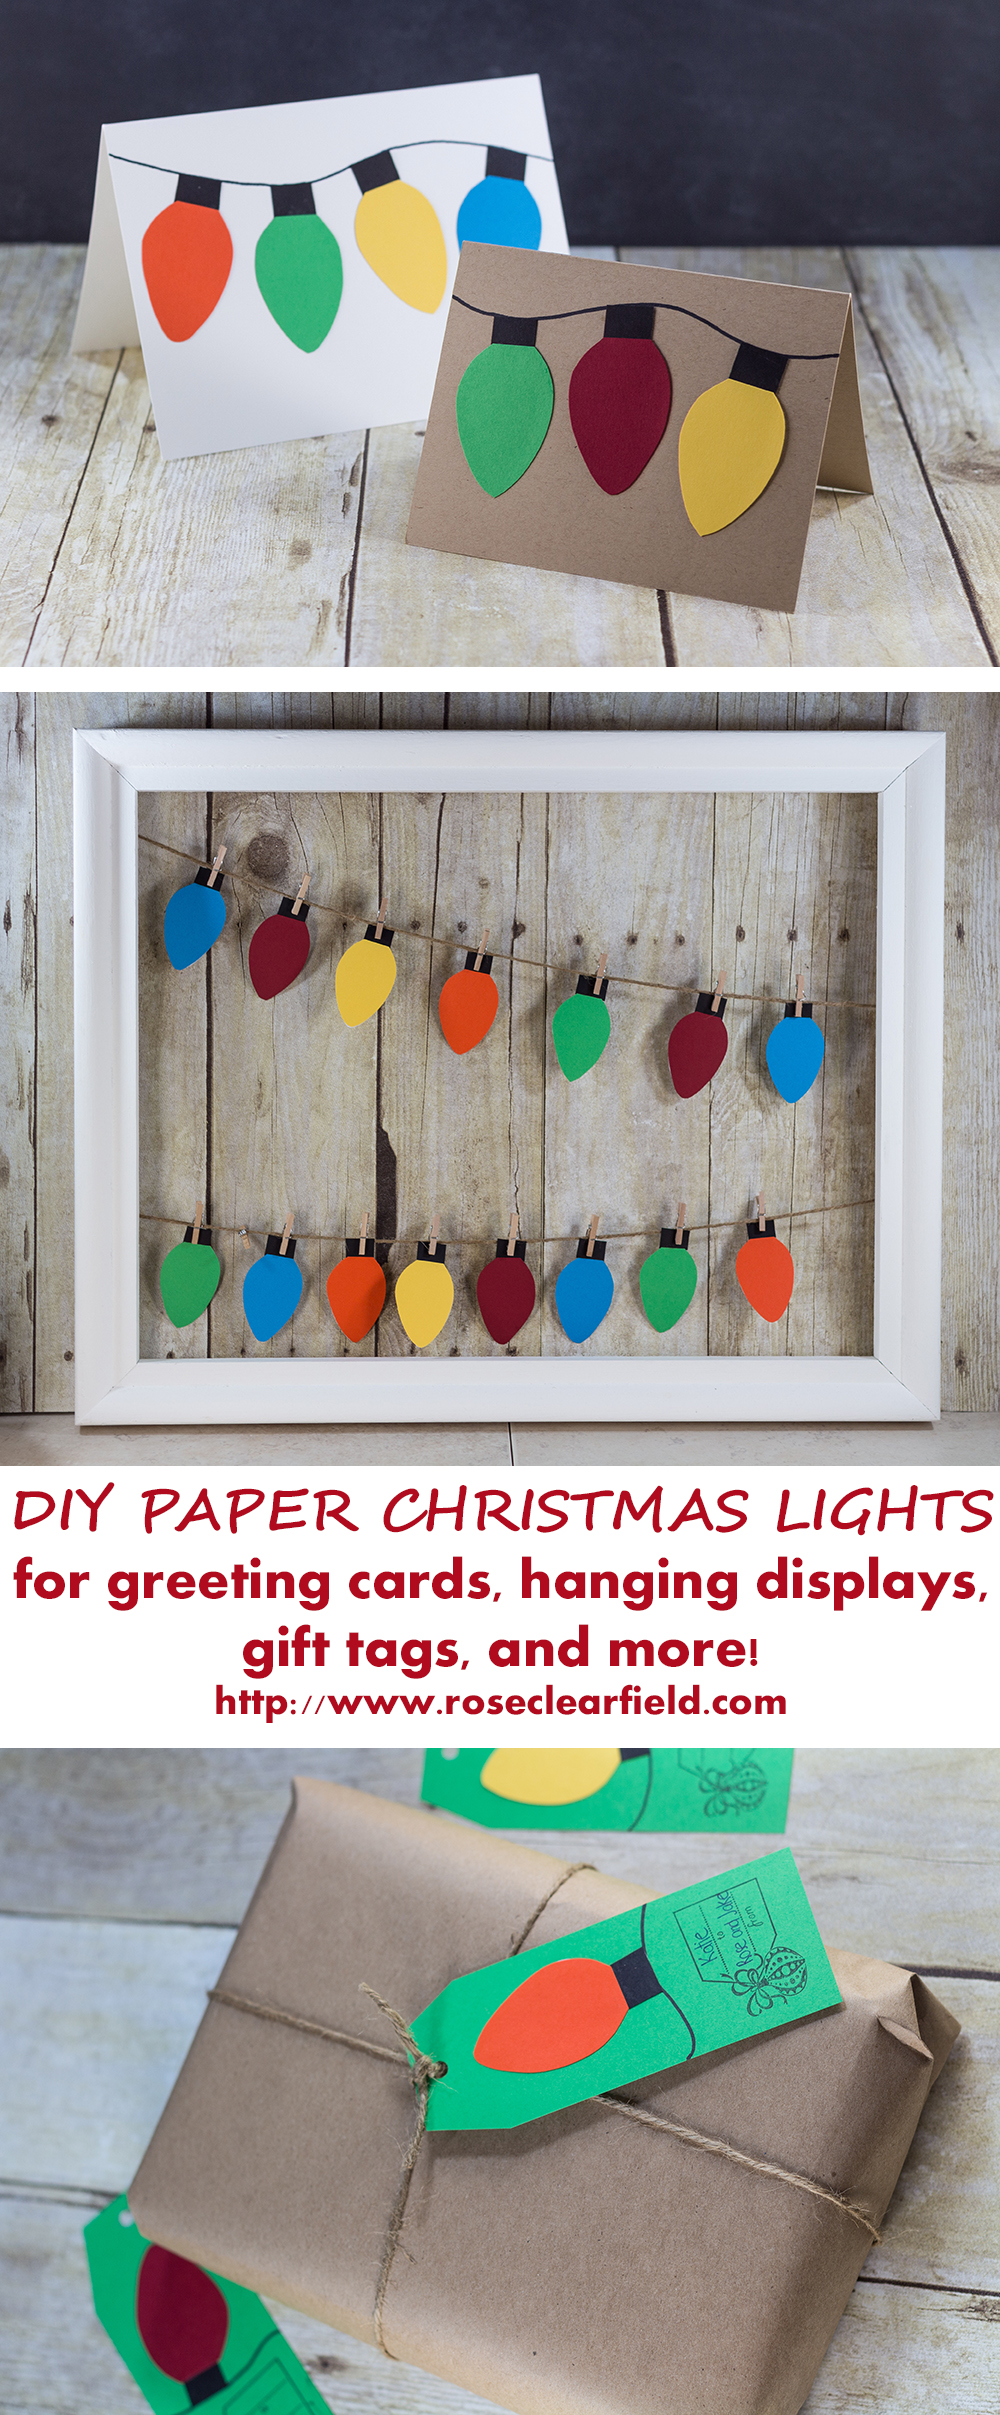 DIY paper Christmas lights holiday craft ideas. Make greeting cards, garlands, gift tags, and much more! | http://www.roseclearfield.com